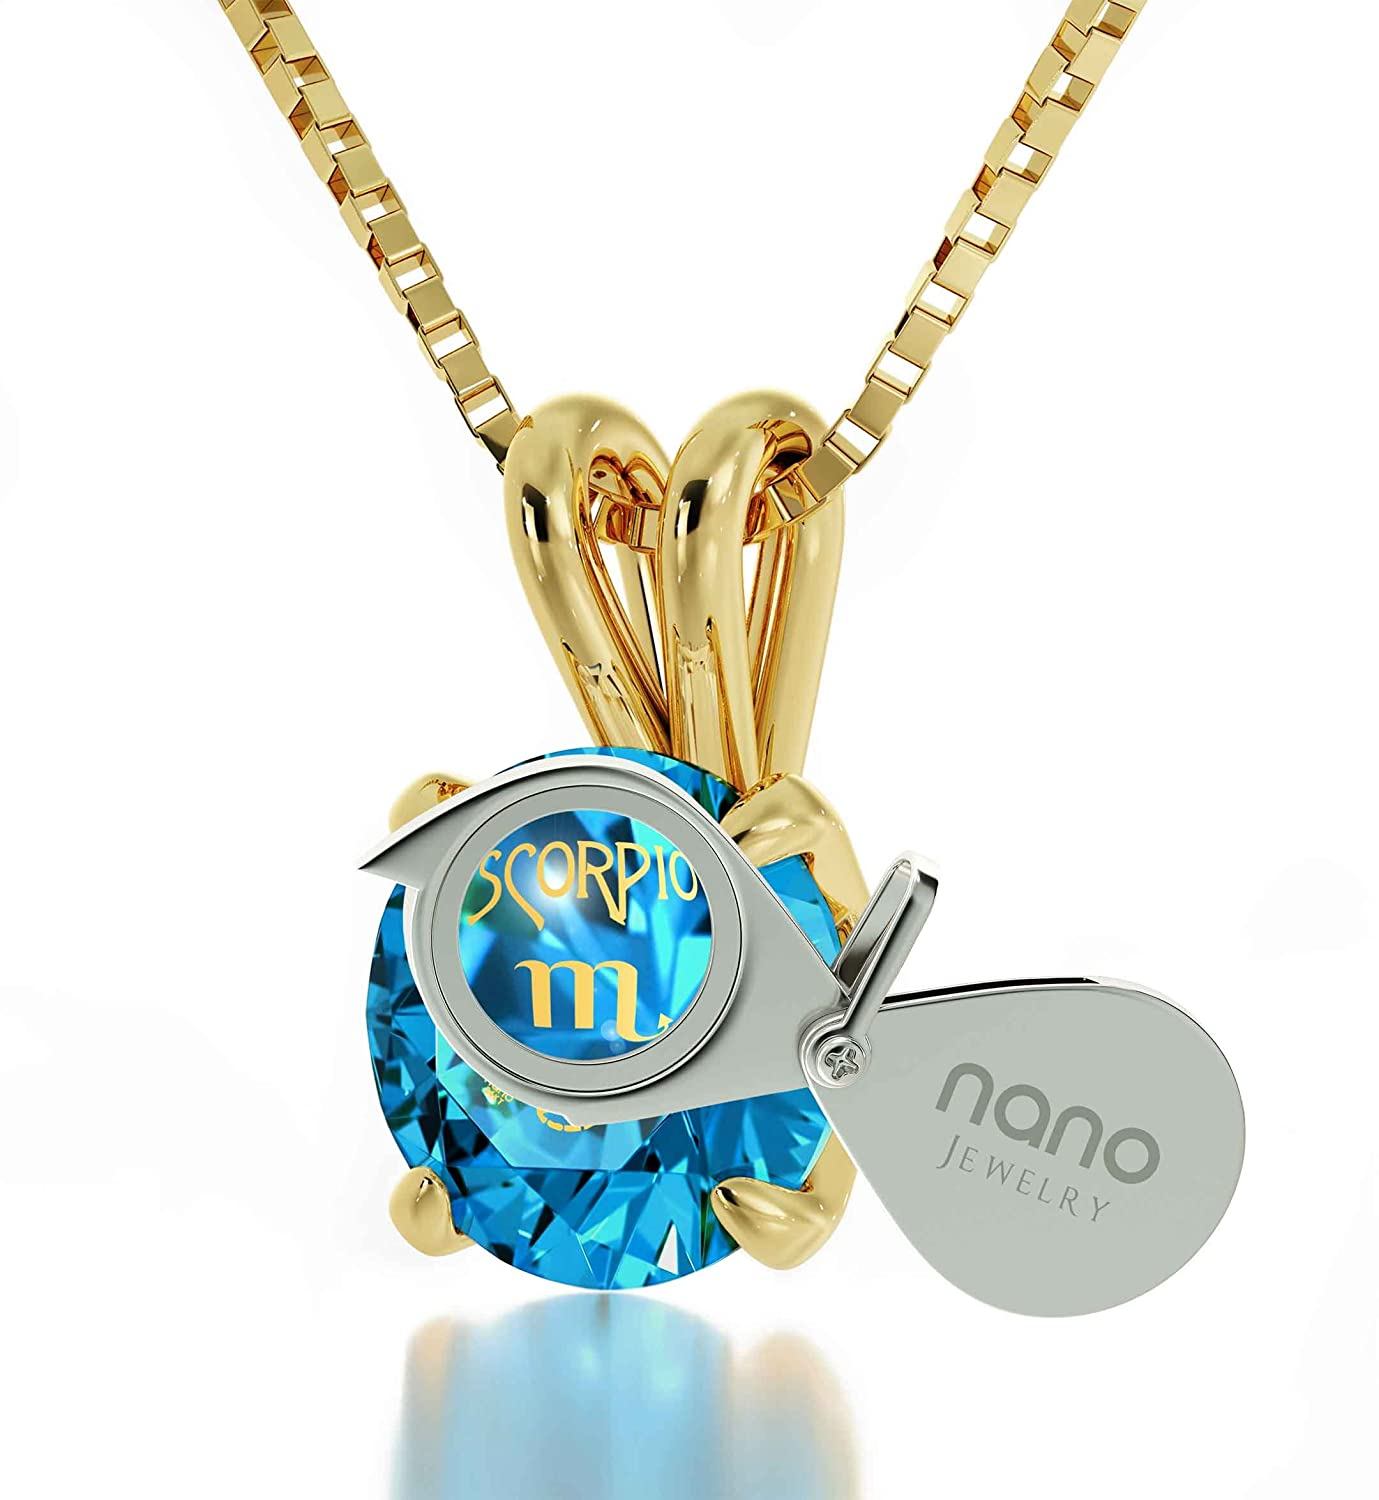 4e527aedc Amazon.com: 14k Yellow Gold Zodiac Pendant Scorpio Necklace 24k Gold  inscribed on Blue Crystal, 18